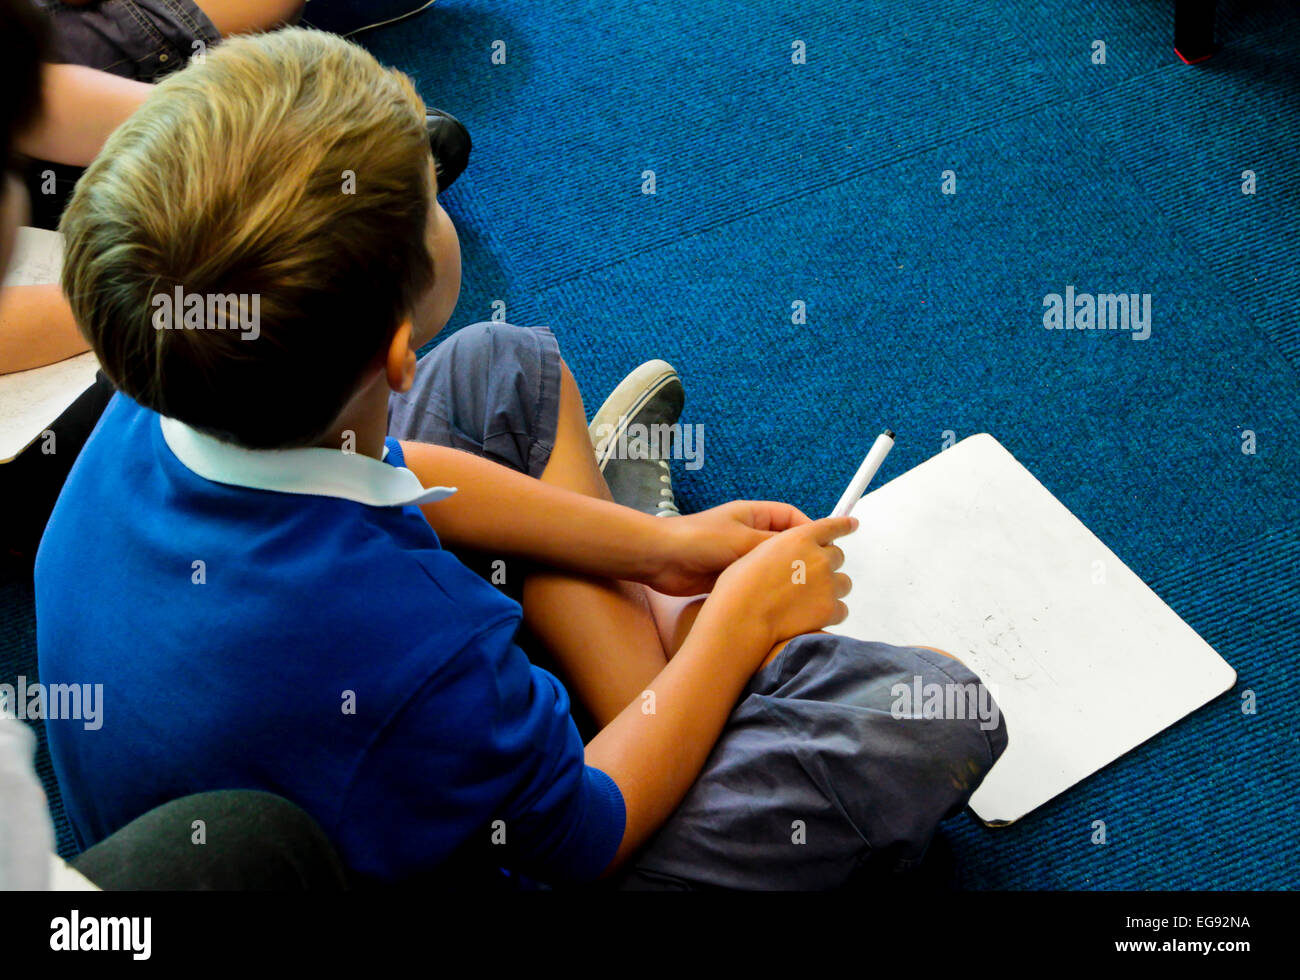 Primary schoolchildren kneeling on the classroom floor during a lesson - Stock Image